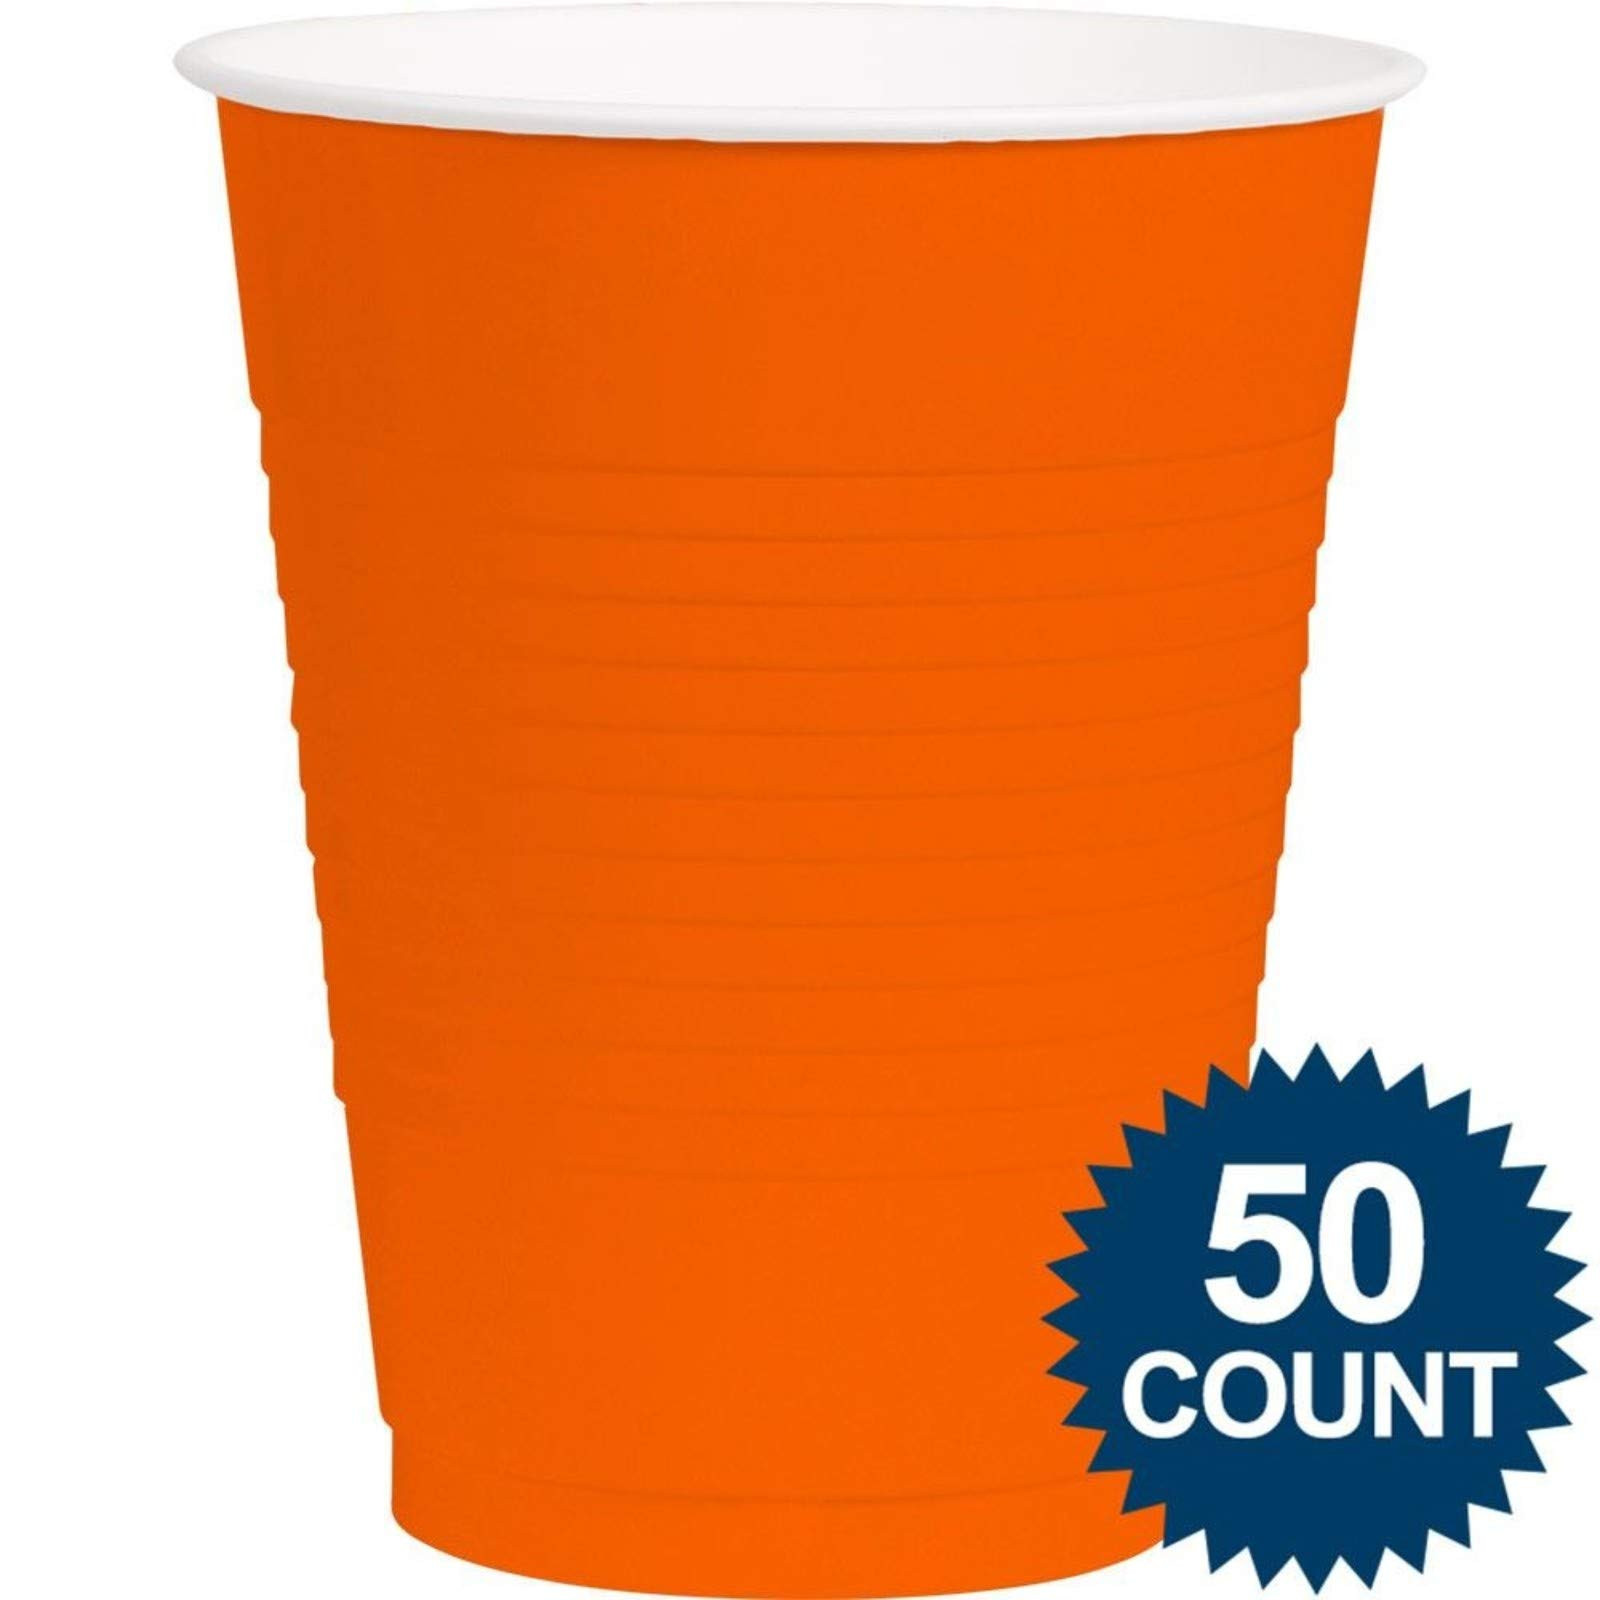 Amscan Orange Plastic 16oz. Cup (50 Pack) - Party Supplies by amscan